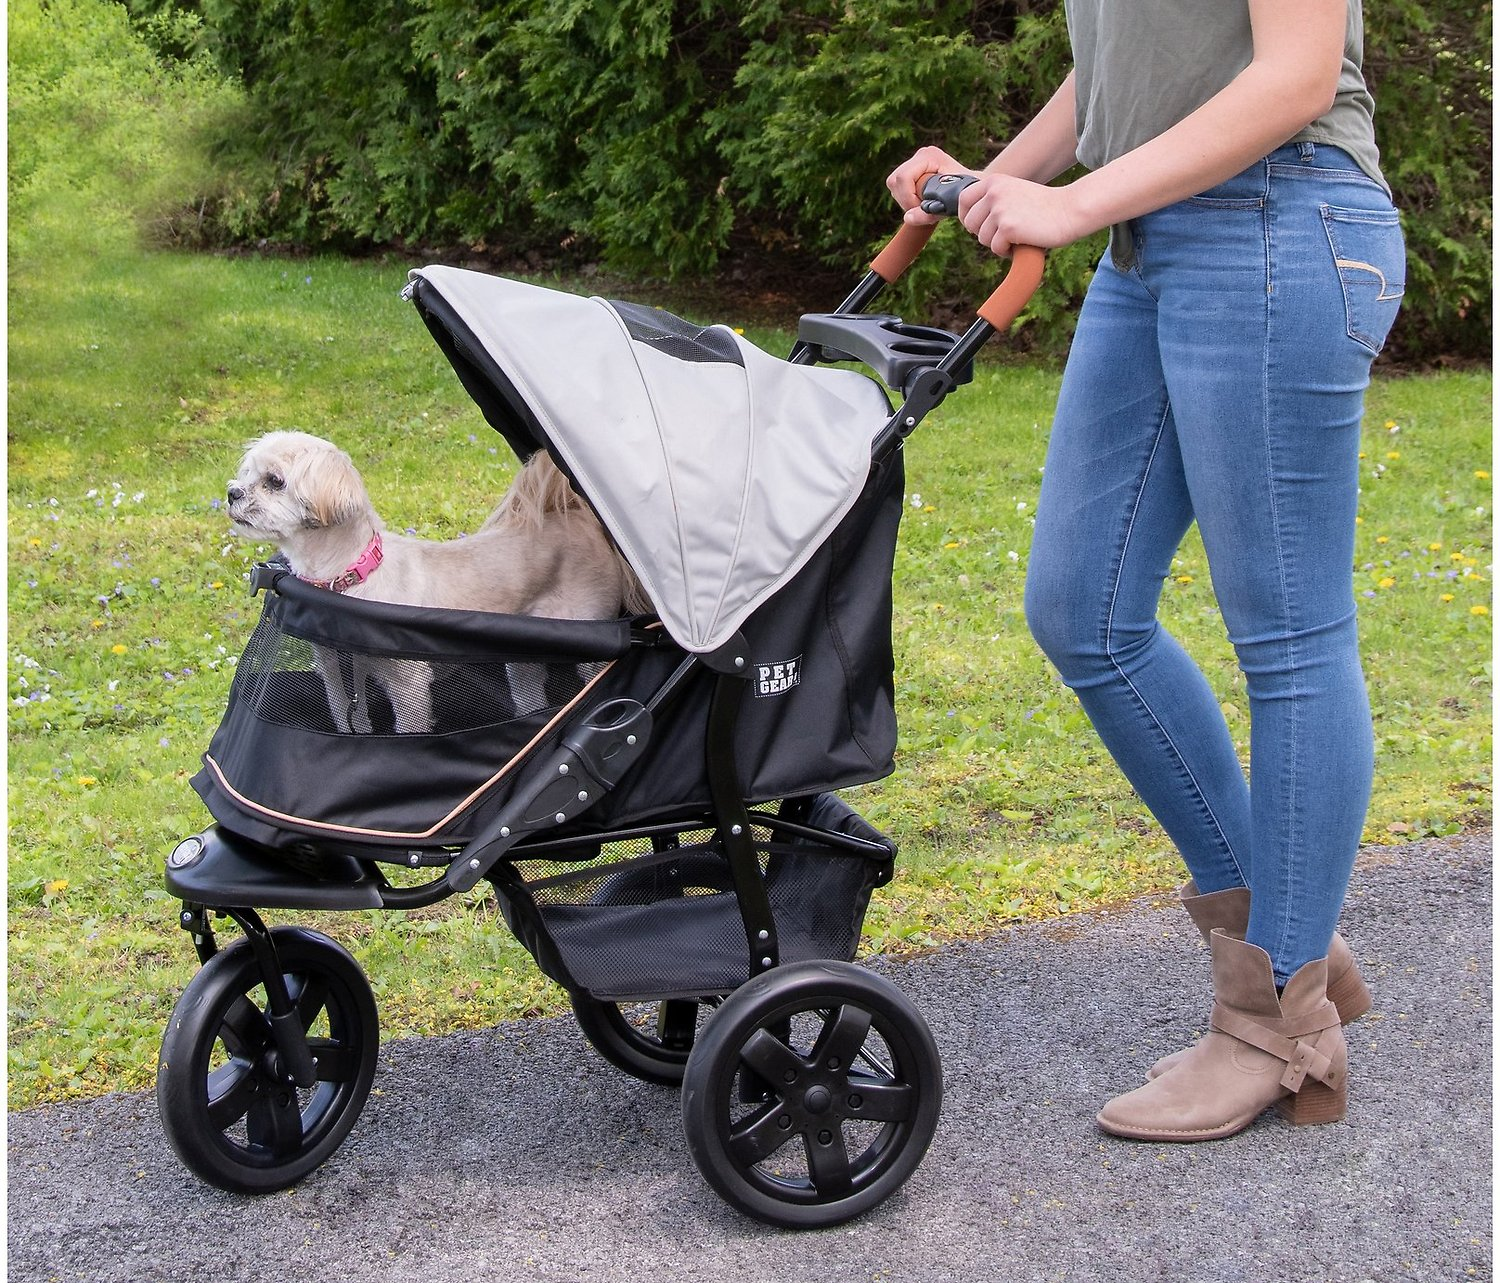 Pet Gear AT3 No-Zip Pet Stroller, Summit Grey - Chewy.com